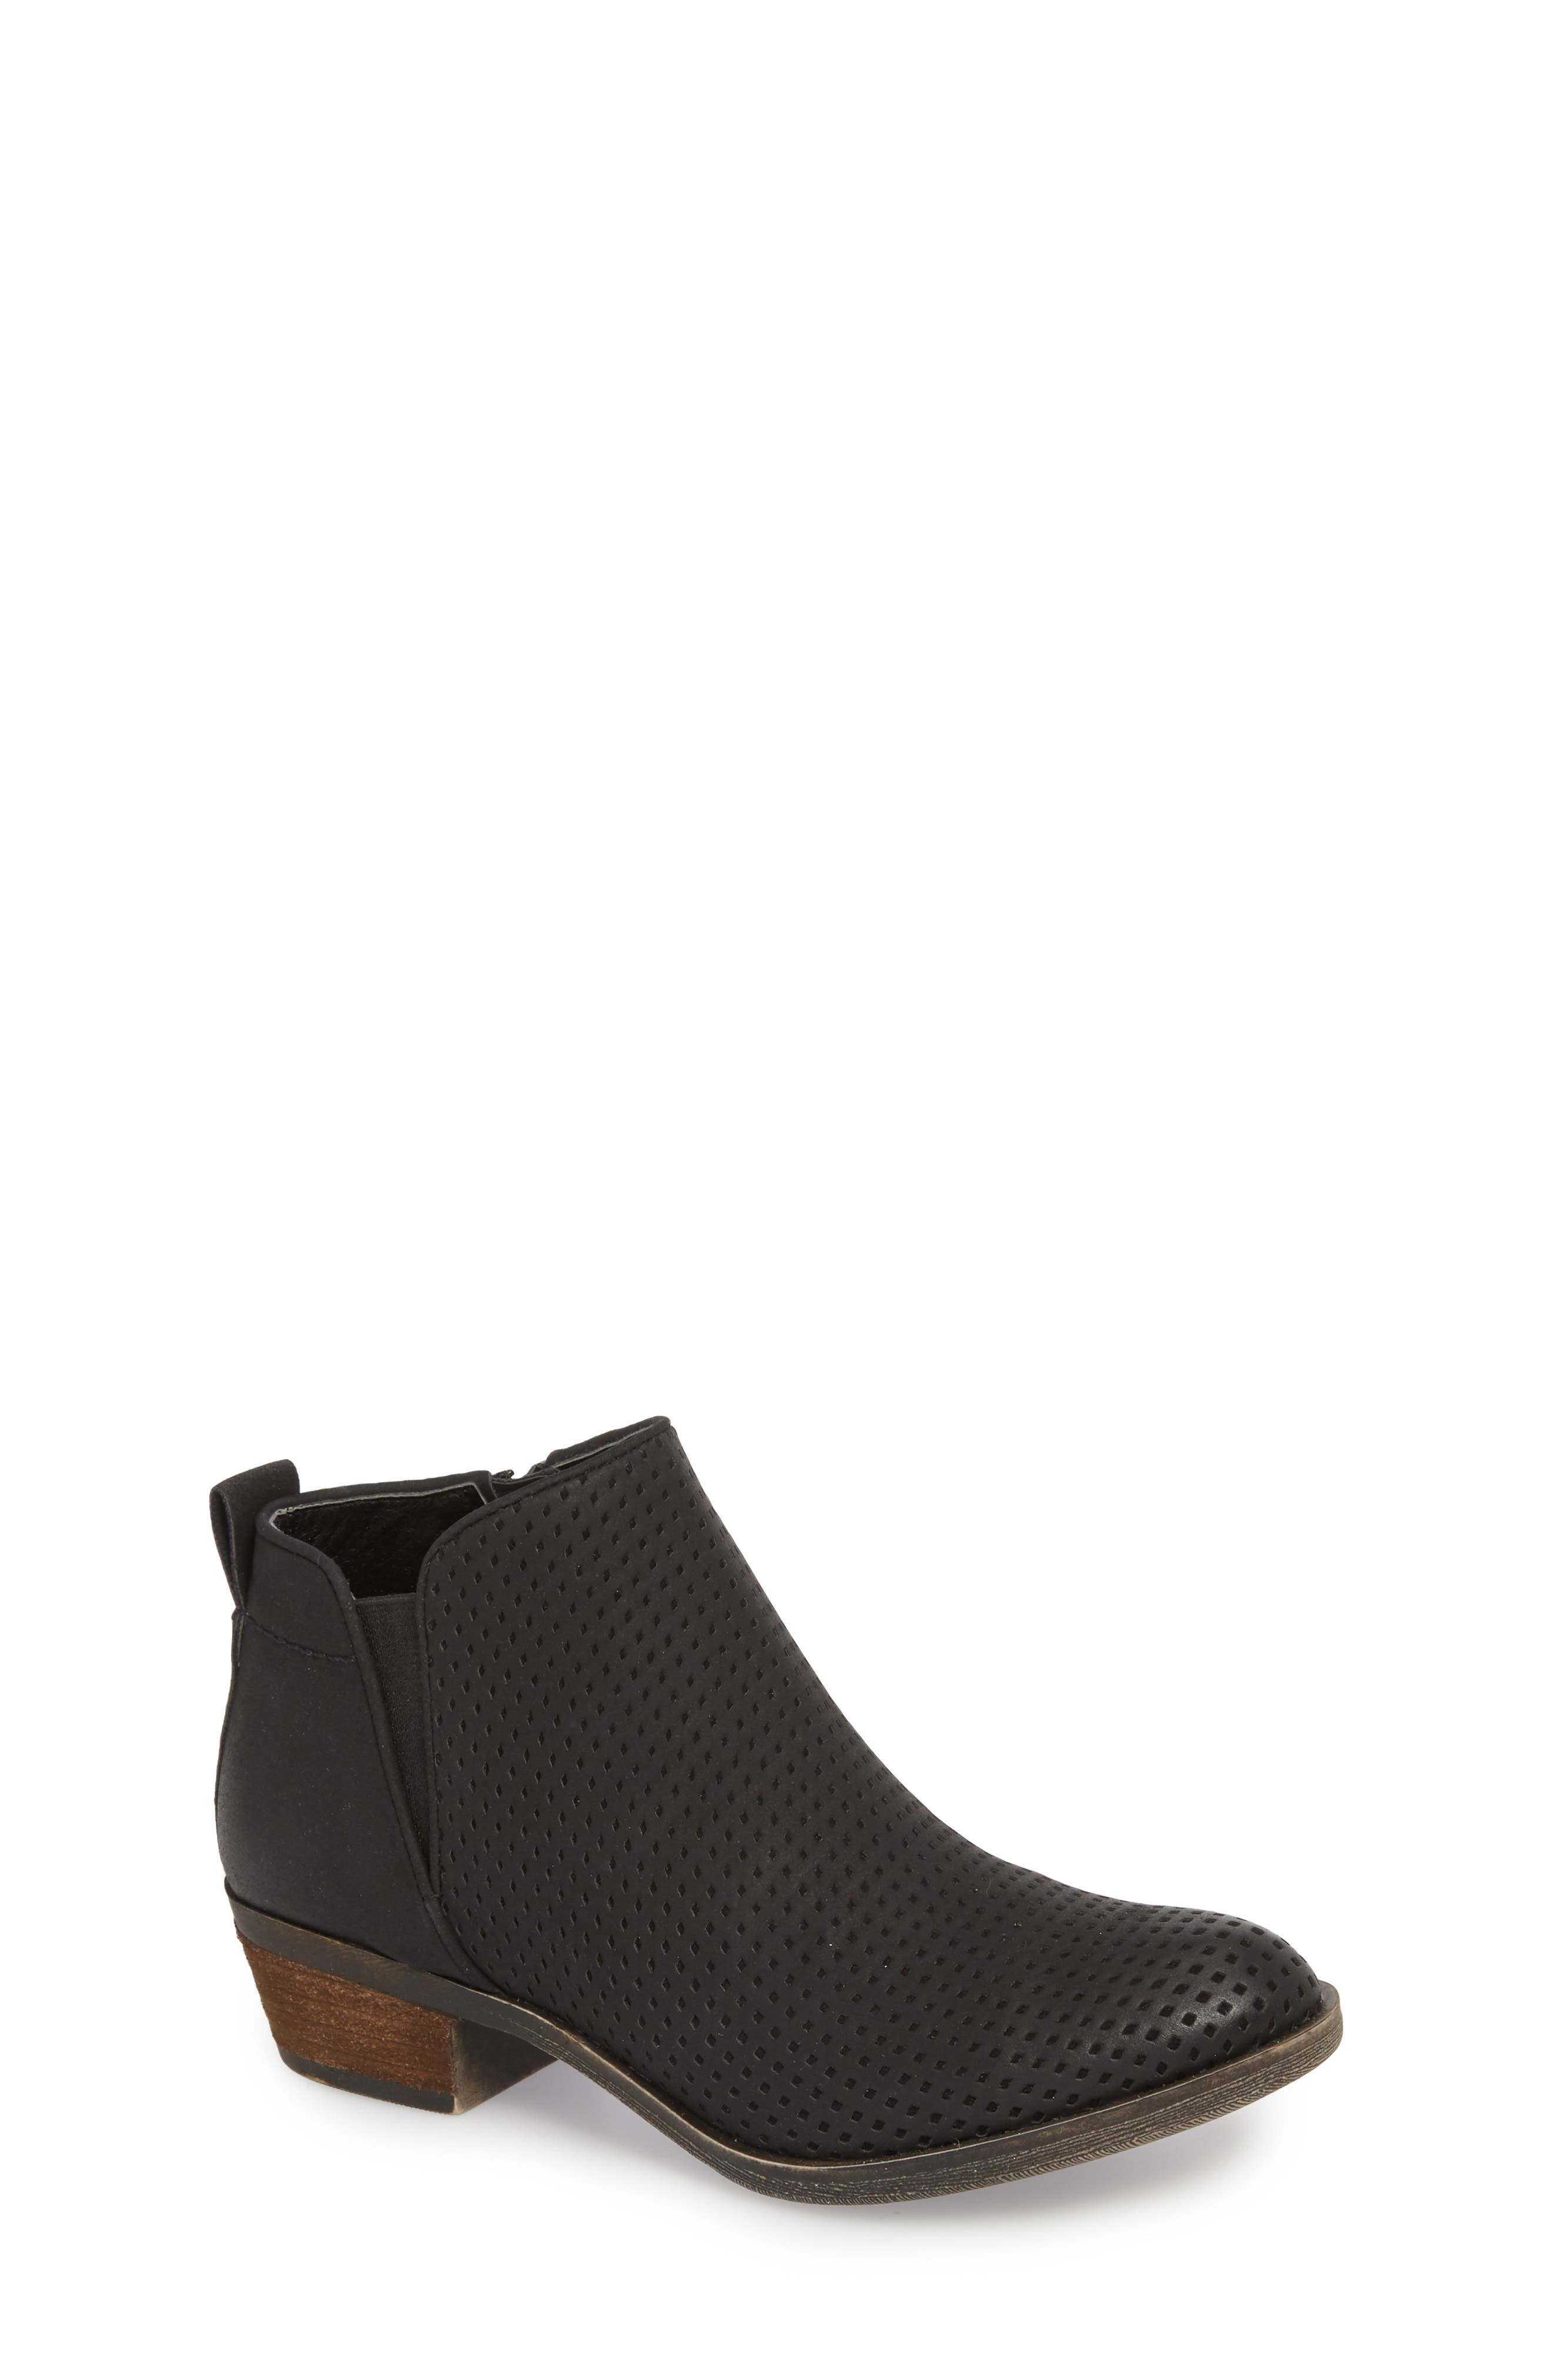 Isla Bootie,                         Main,                         color, BLACK FAUX LEATHER